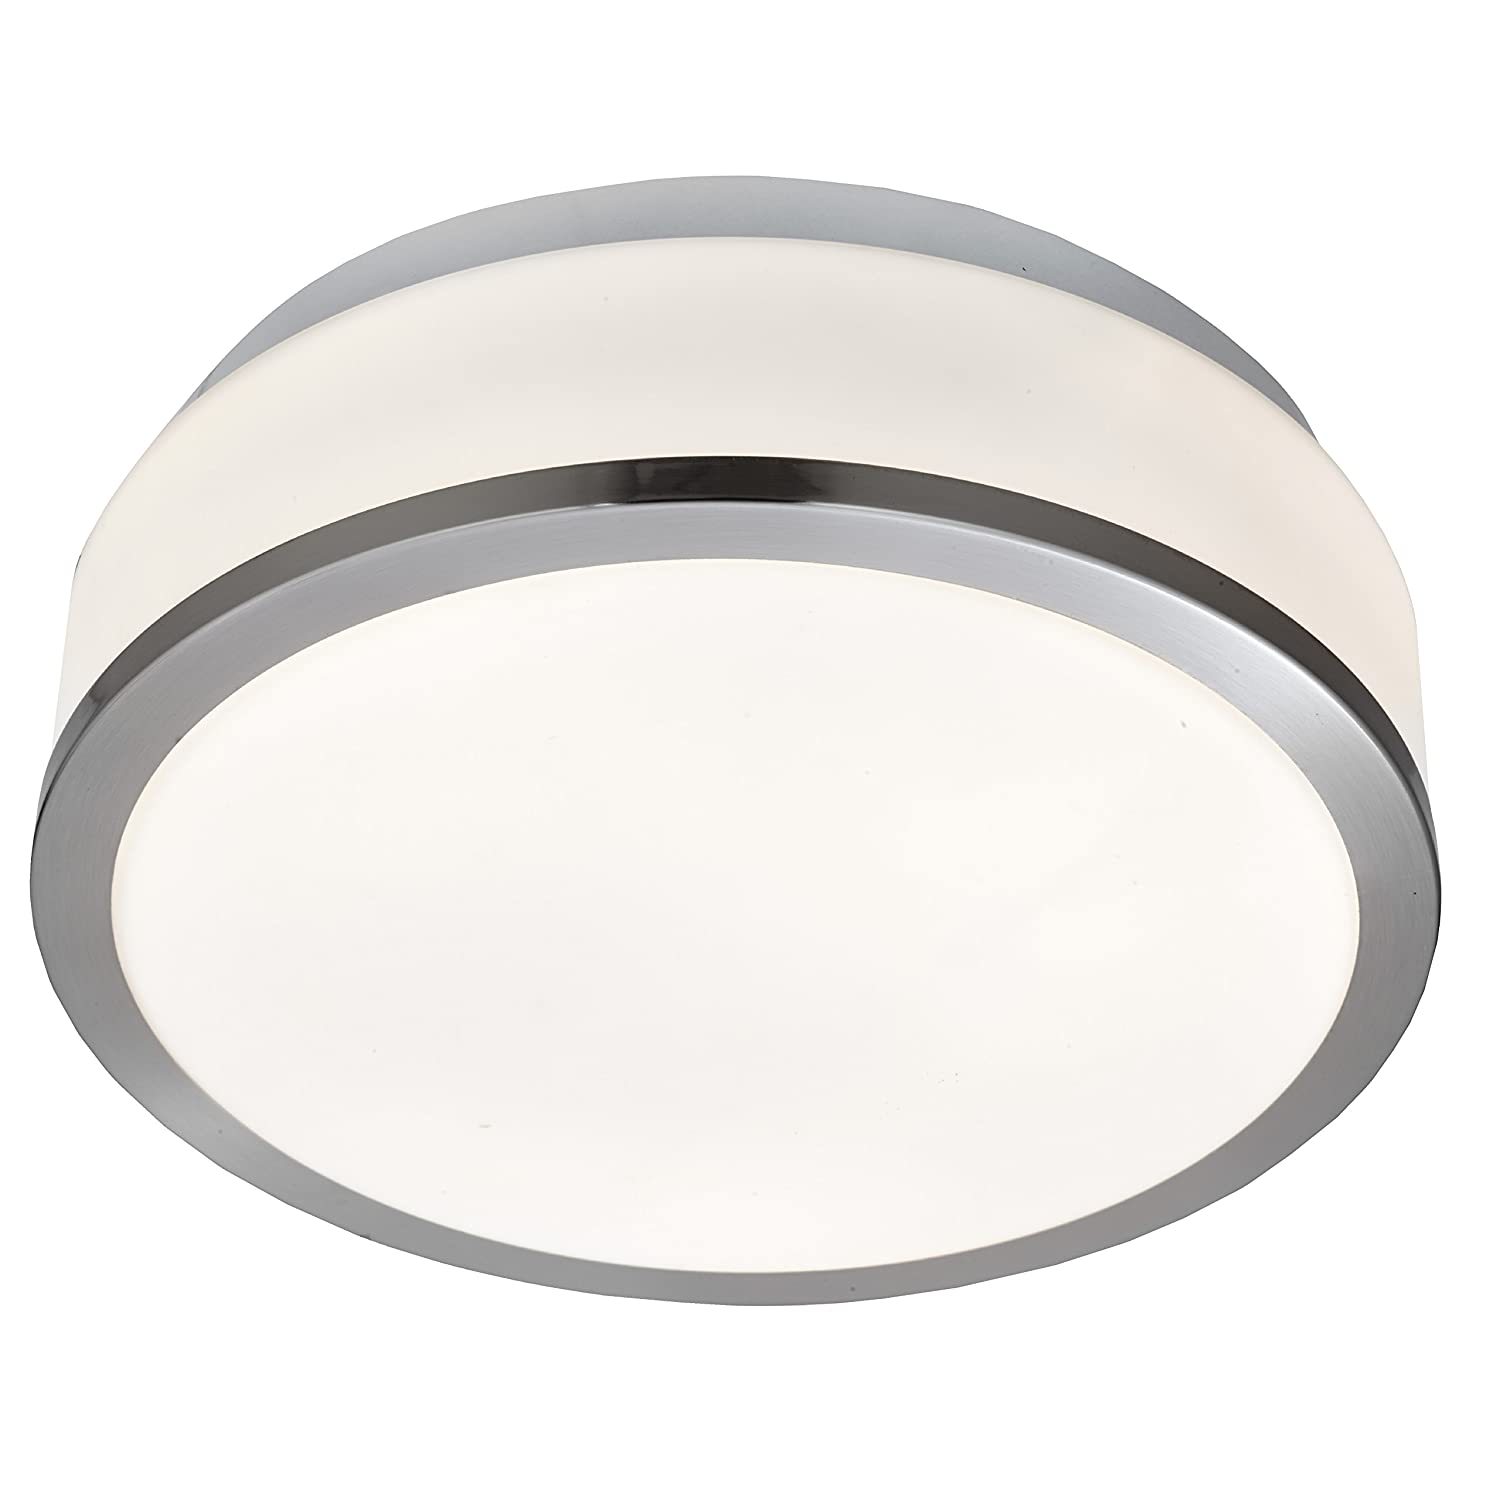 Modern IP44 White Glass Bathroom Flush Light in Satin Silver by Laeto Lighting Searchlight Electric